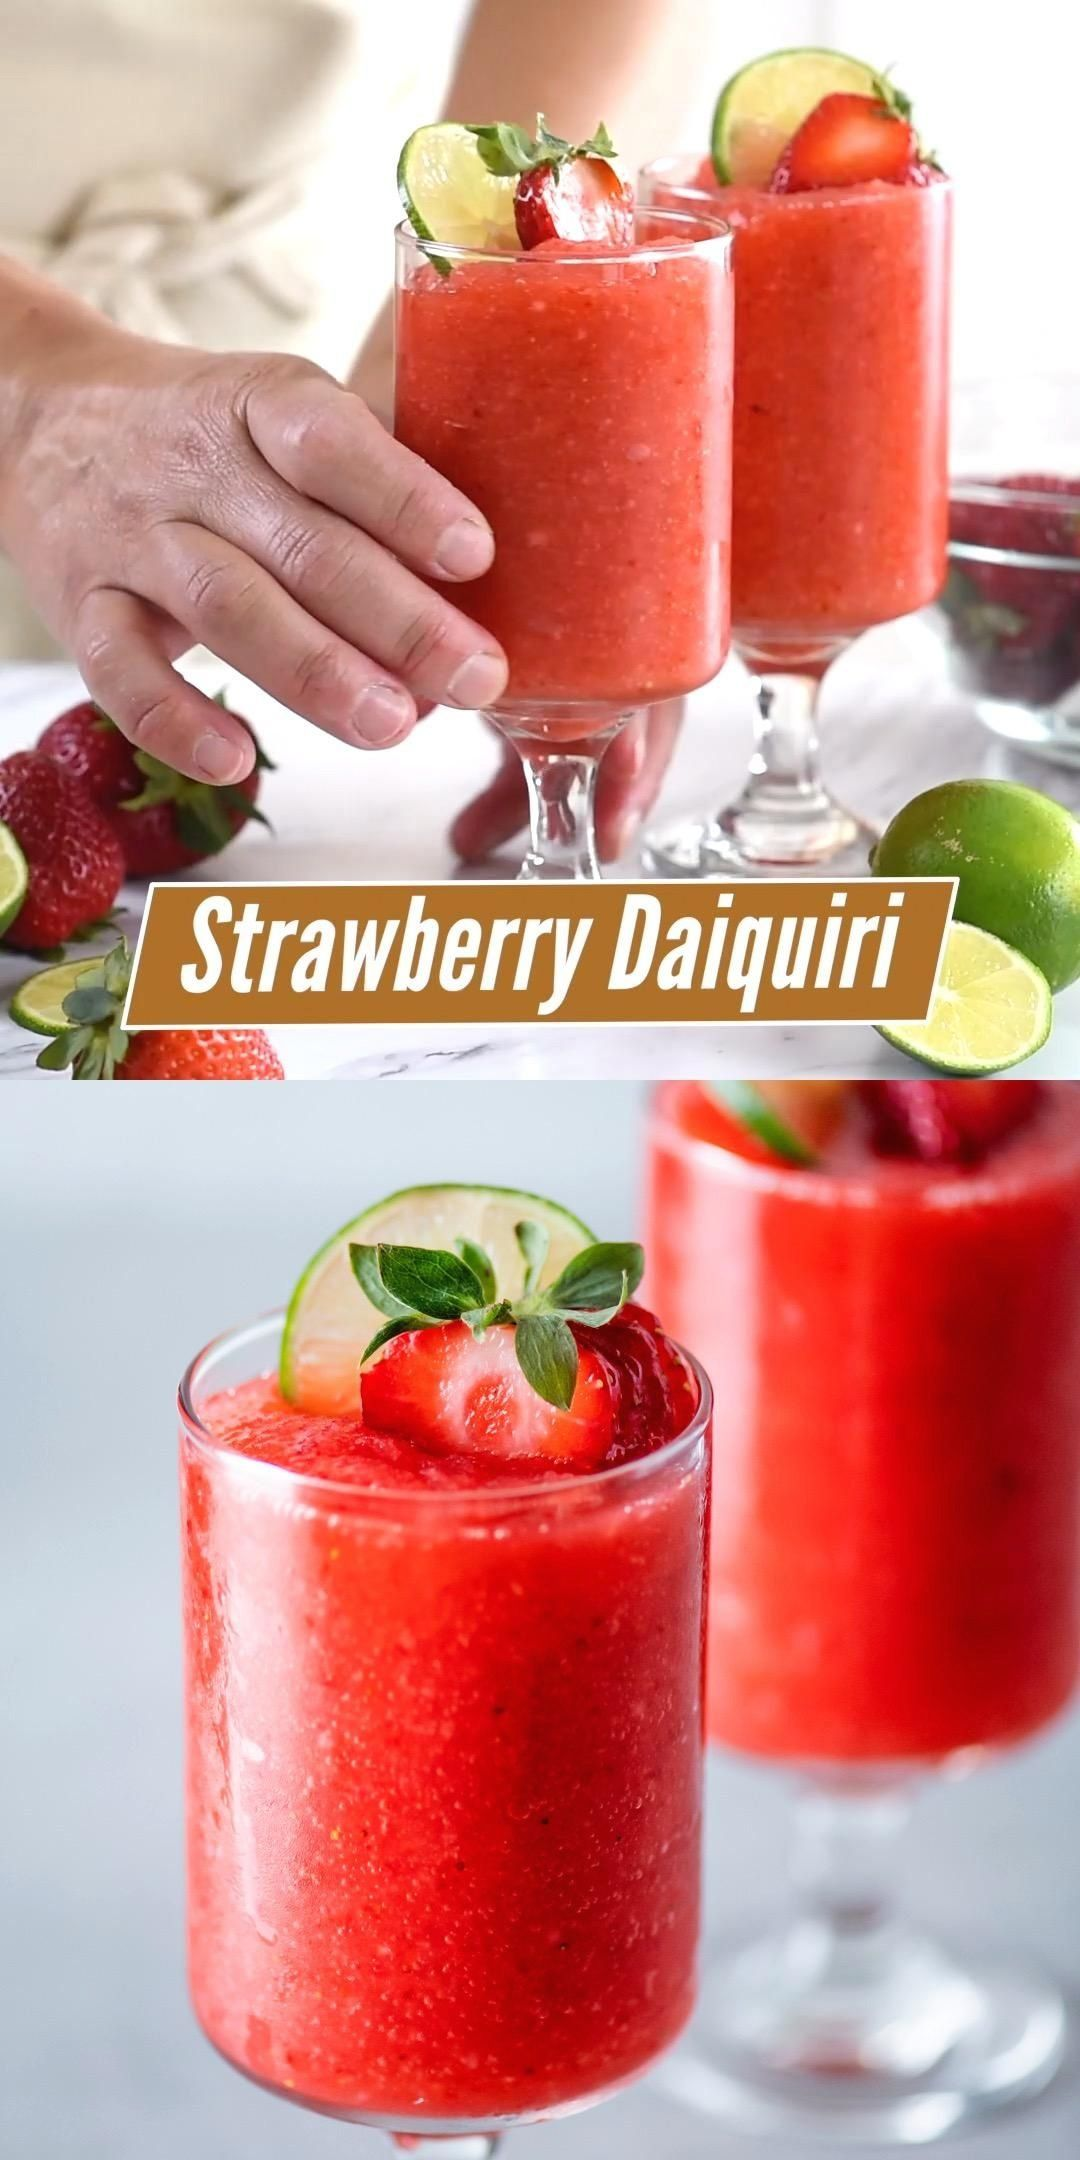 Frozen Strawberry Daiquiri Recipe 1002 Frozen Cocktail Recipes Frozen Strawberry Daiquiri Recipe Daiquiri Recipe